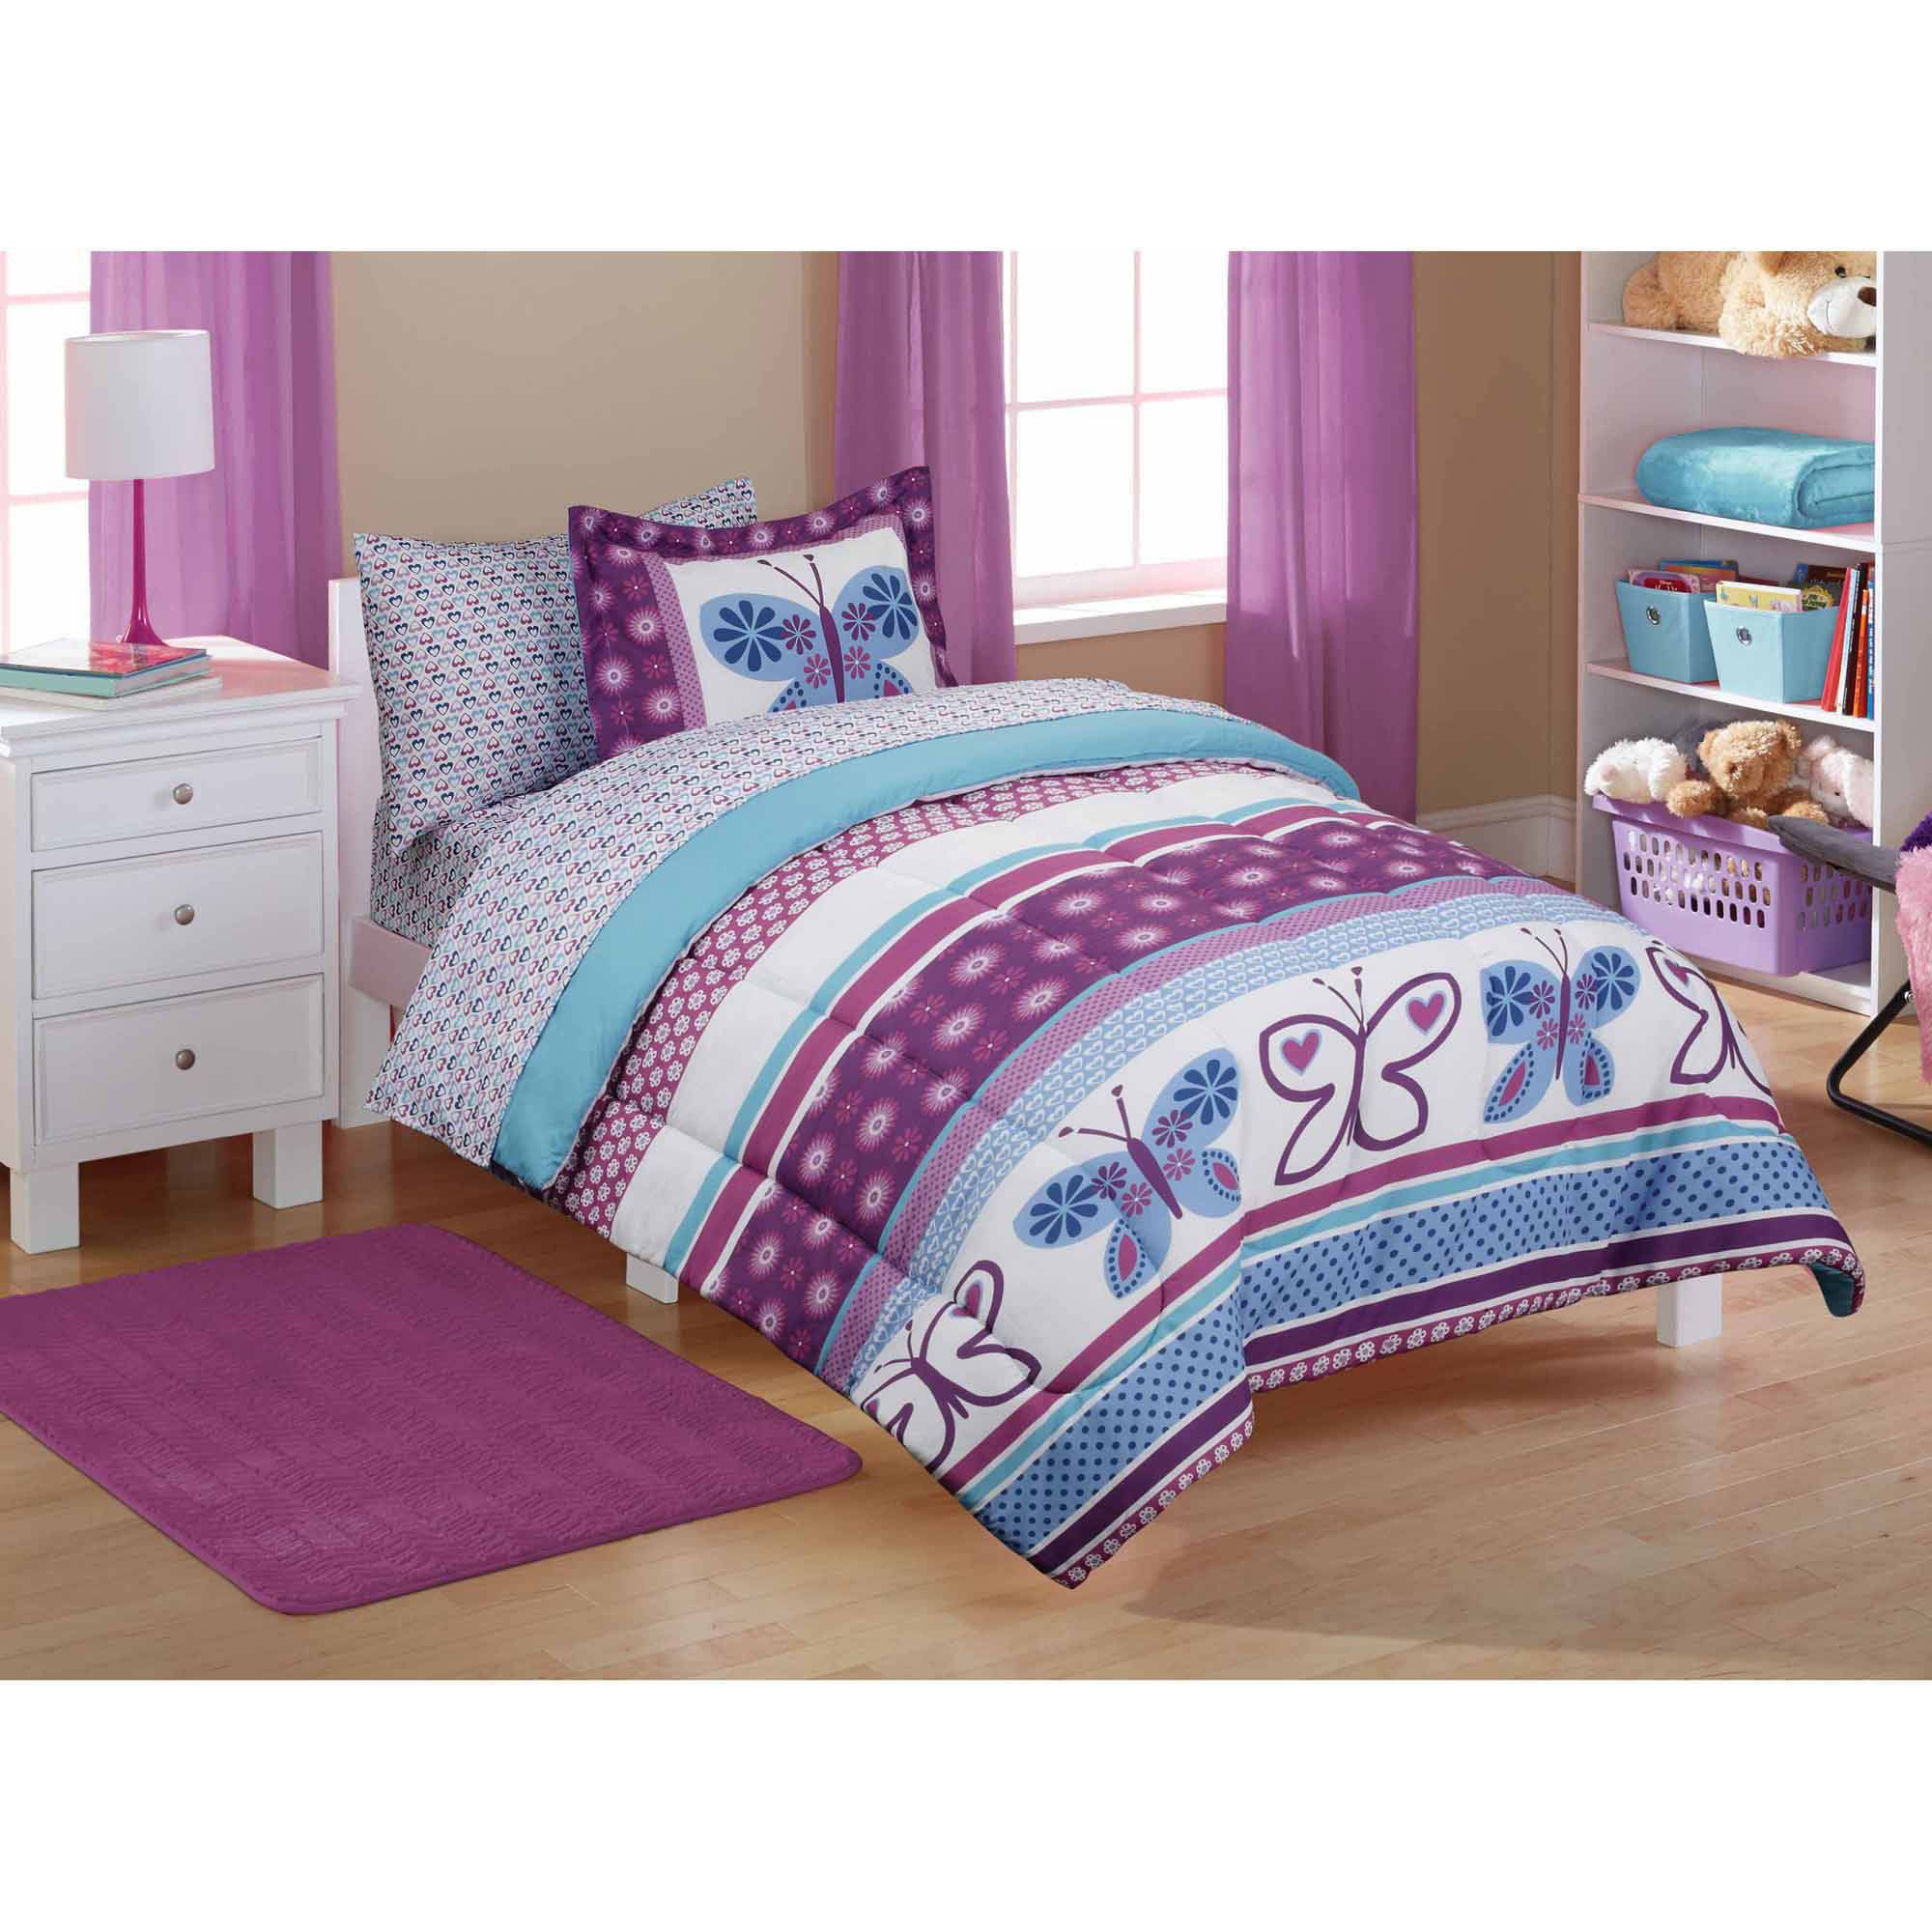 Mainstays Kids Purple Butterfly Coordinated Bed in a Bag, 1 Each